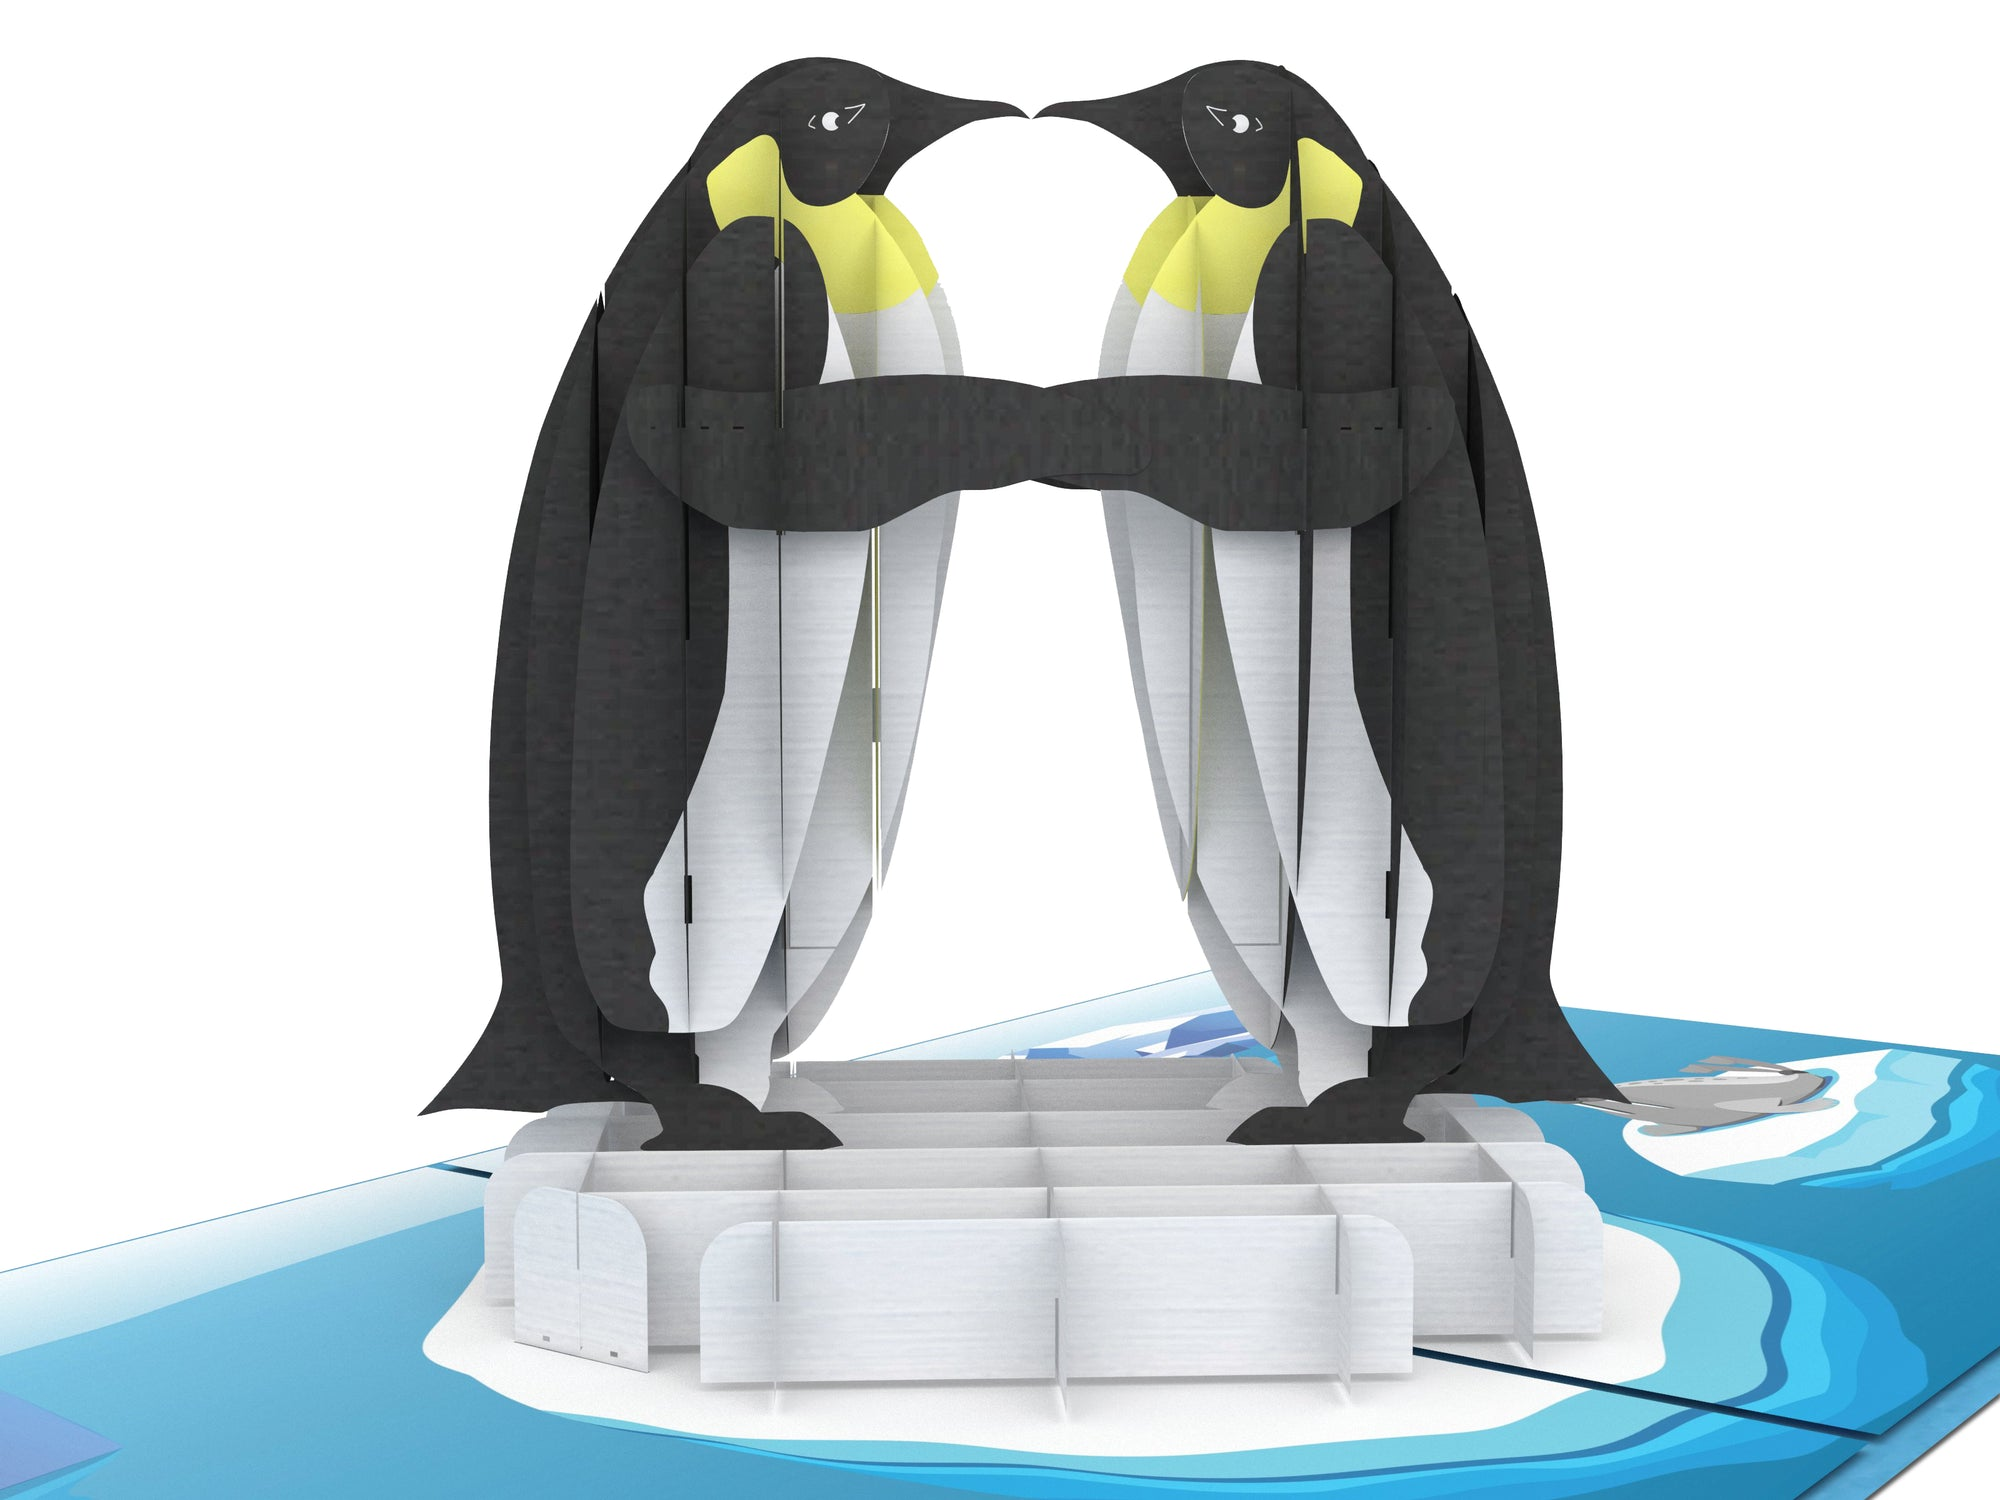 King Penguins 3D Creative Pop Up Card